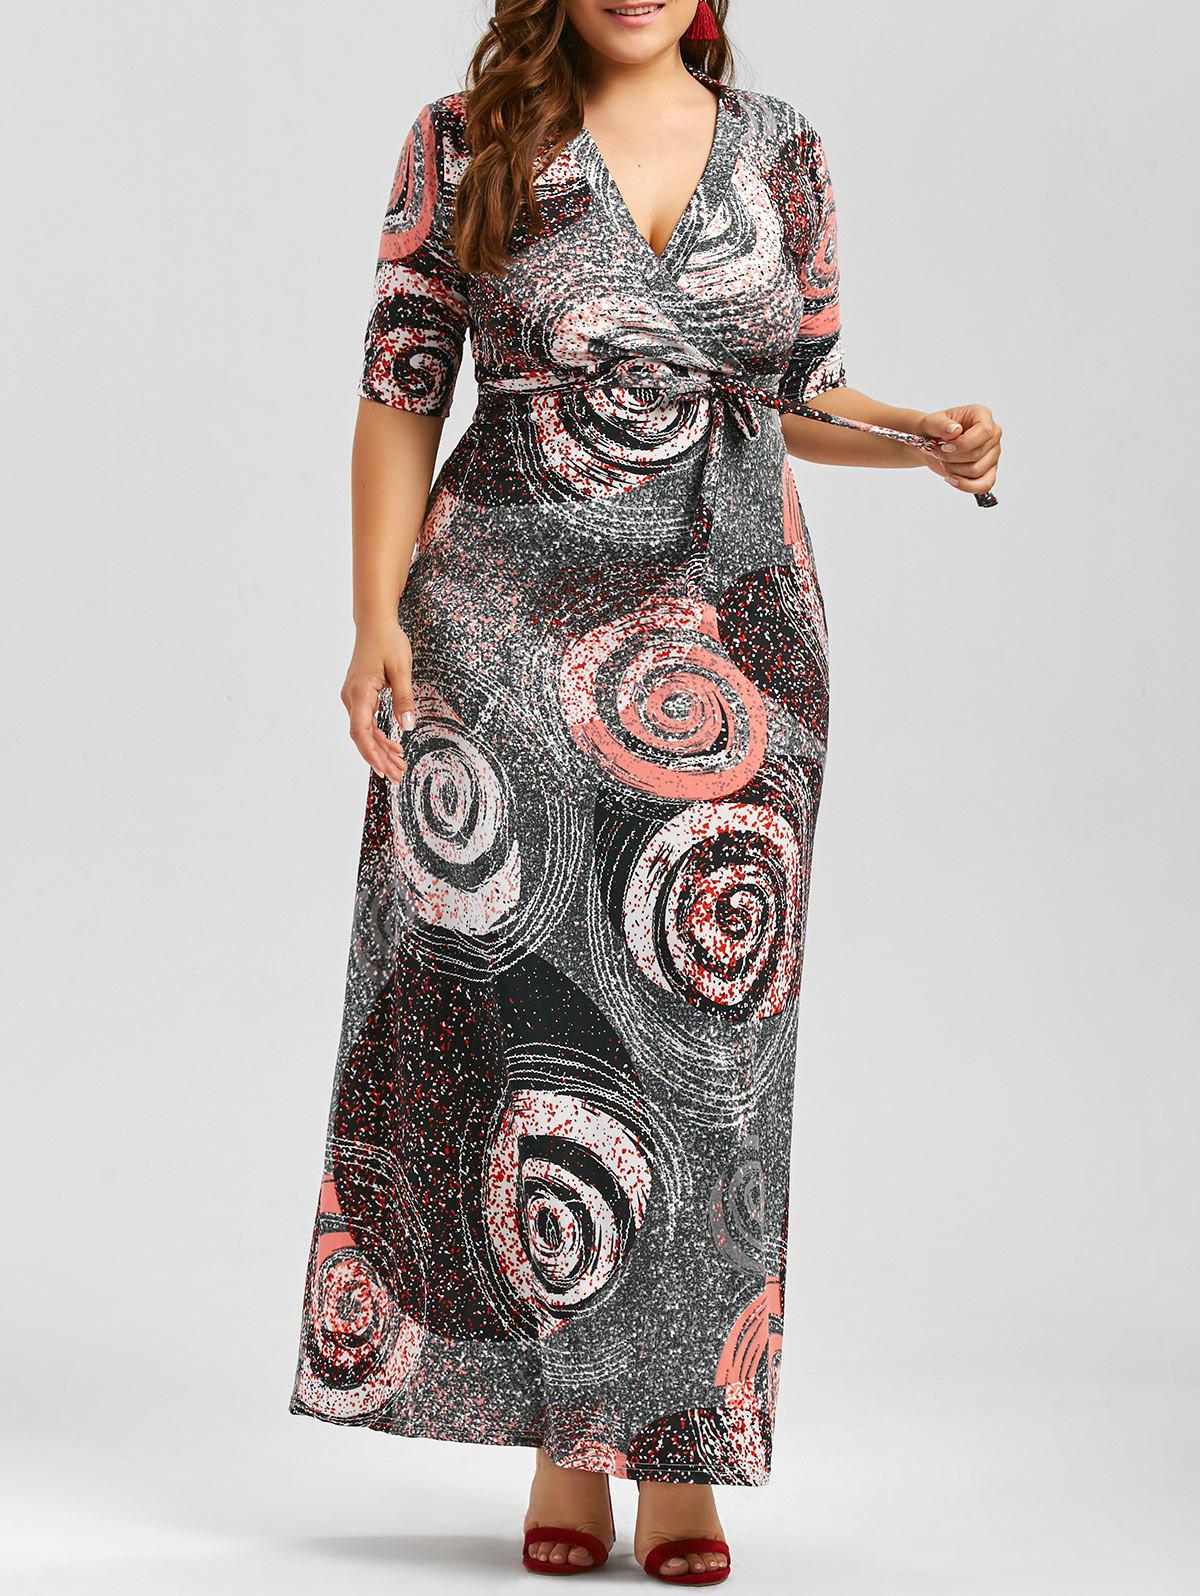 Galaxy Print Plus Size Floor Length Dress With Belt - COLORMIX 4XL